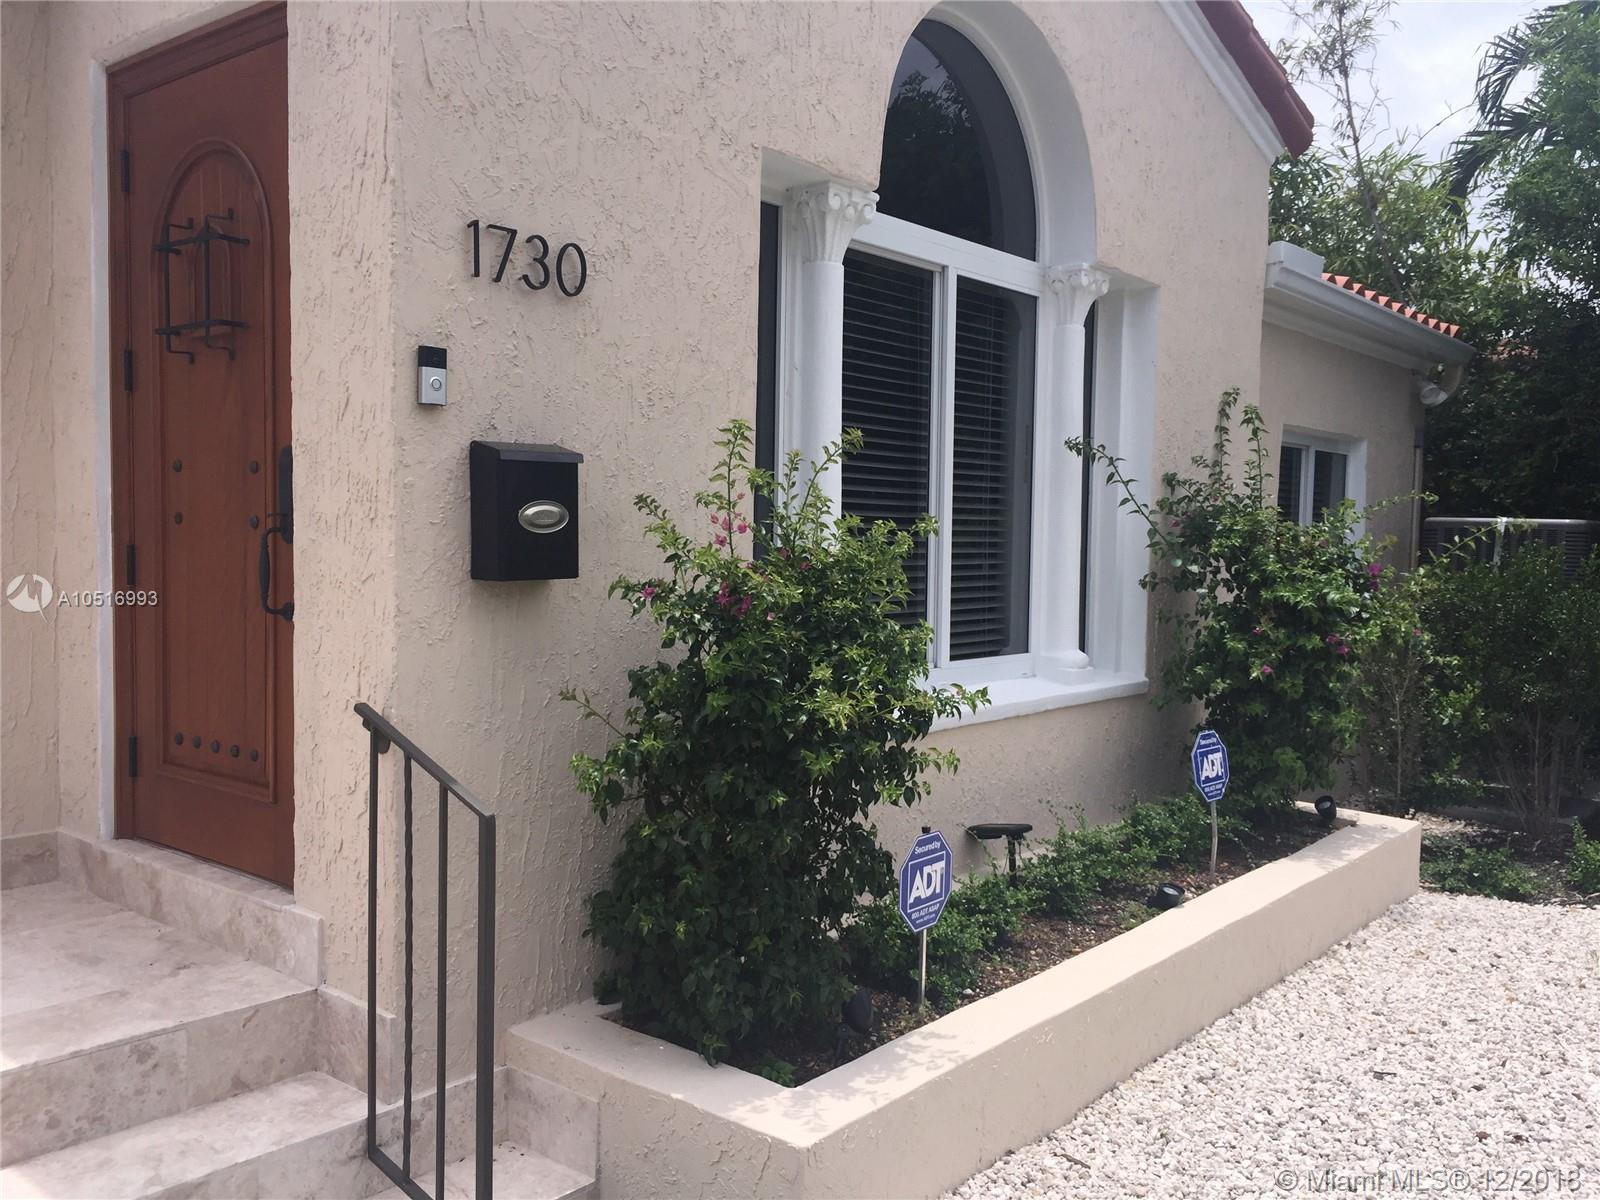 Great Location Normandy Isle Miami Beach. Completely Remodeled Single Family Home. 3 Bedrooms Plus Den, 2 Full Bathrooms. Bright Open Living Spaces With Plenty Of Natural Light. High Ceilings. Hurricane Impact Windows And Doors.<Br />New Central A/C. Contemporary Design Kitchen, High End Built In Appliances. Hardwood Floors In Living Room, Dining Room And All Bedrooms. Parking Space For Two Cars. Walk Out To Deck And Fenced In Back Yard. Close To All Shopping, Restaurants And Within Minutes To Beach.